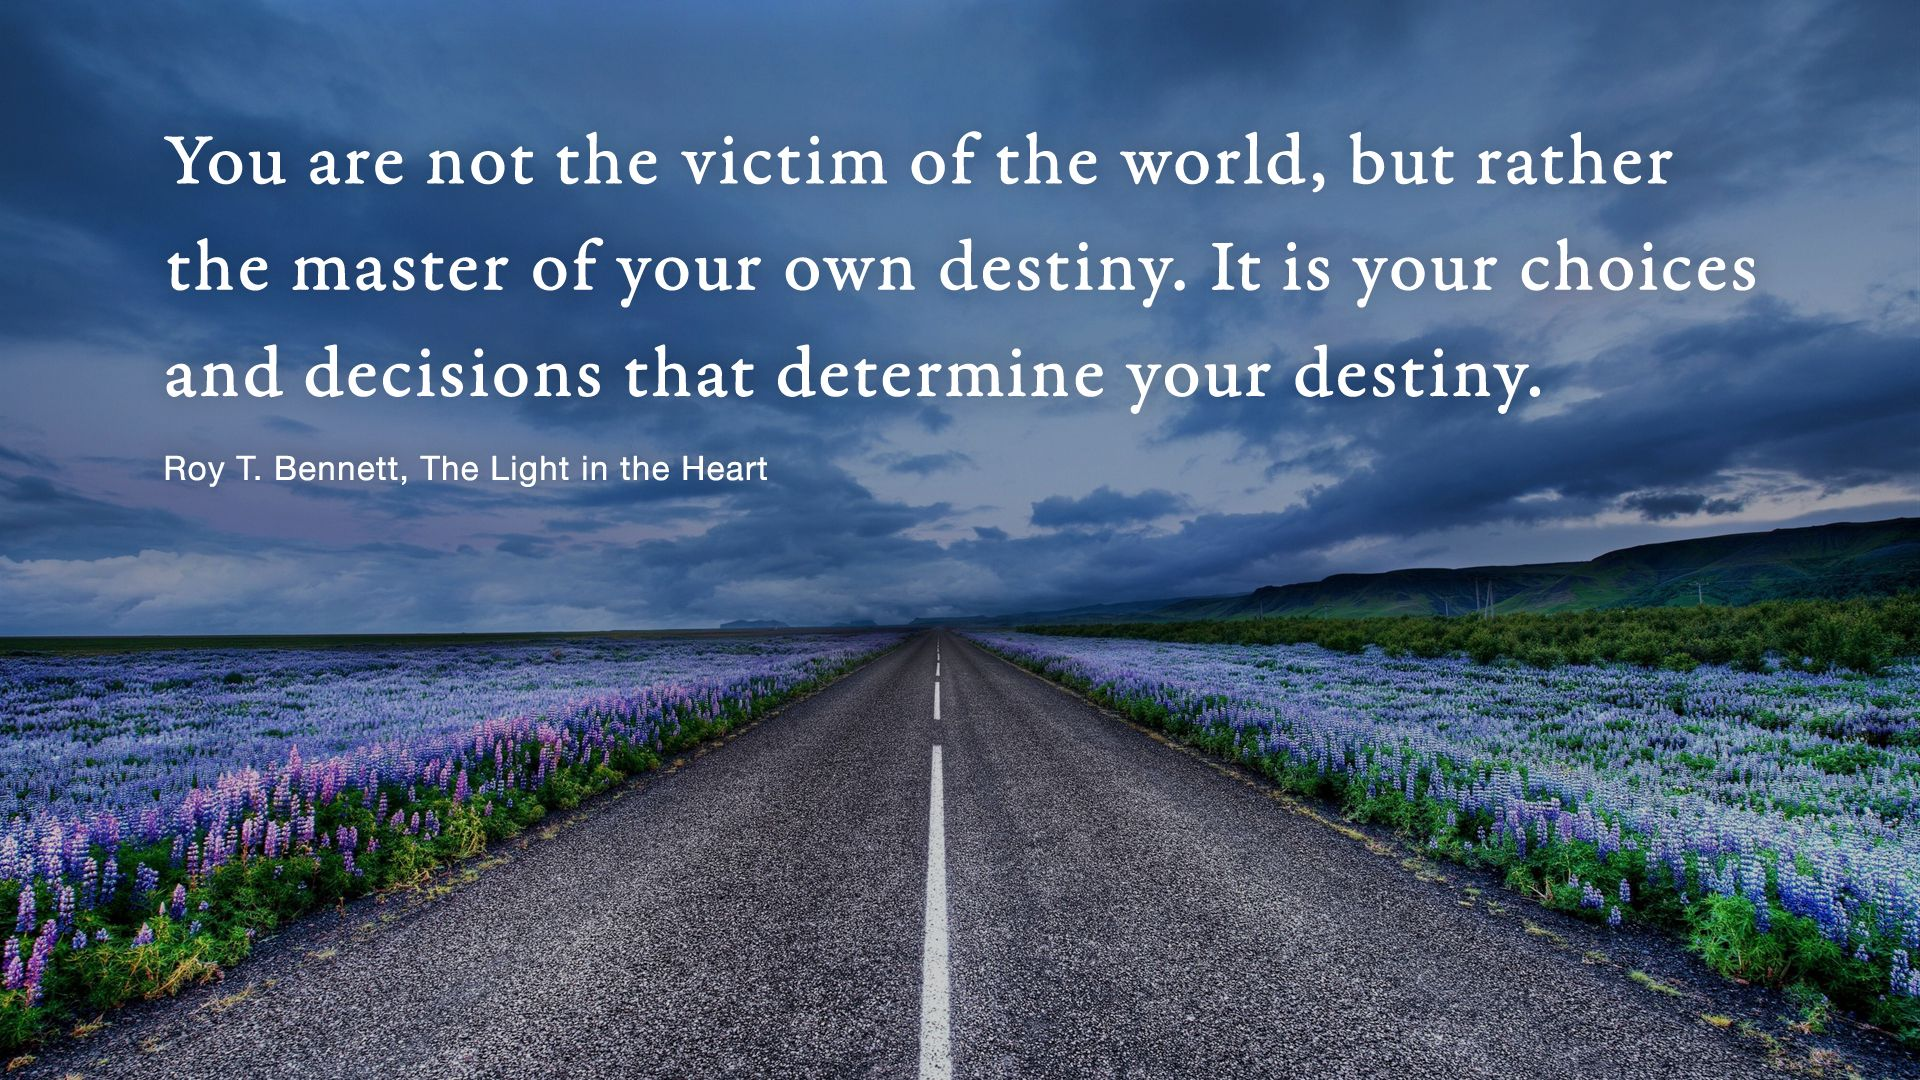 The Master Of Your Own Destiny With Images Landscape